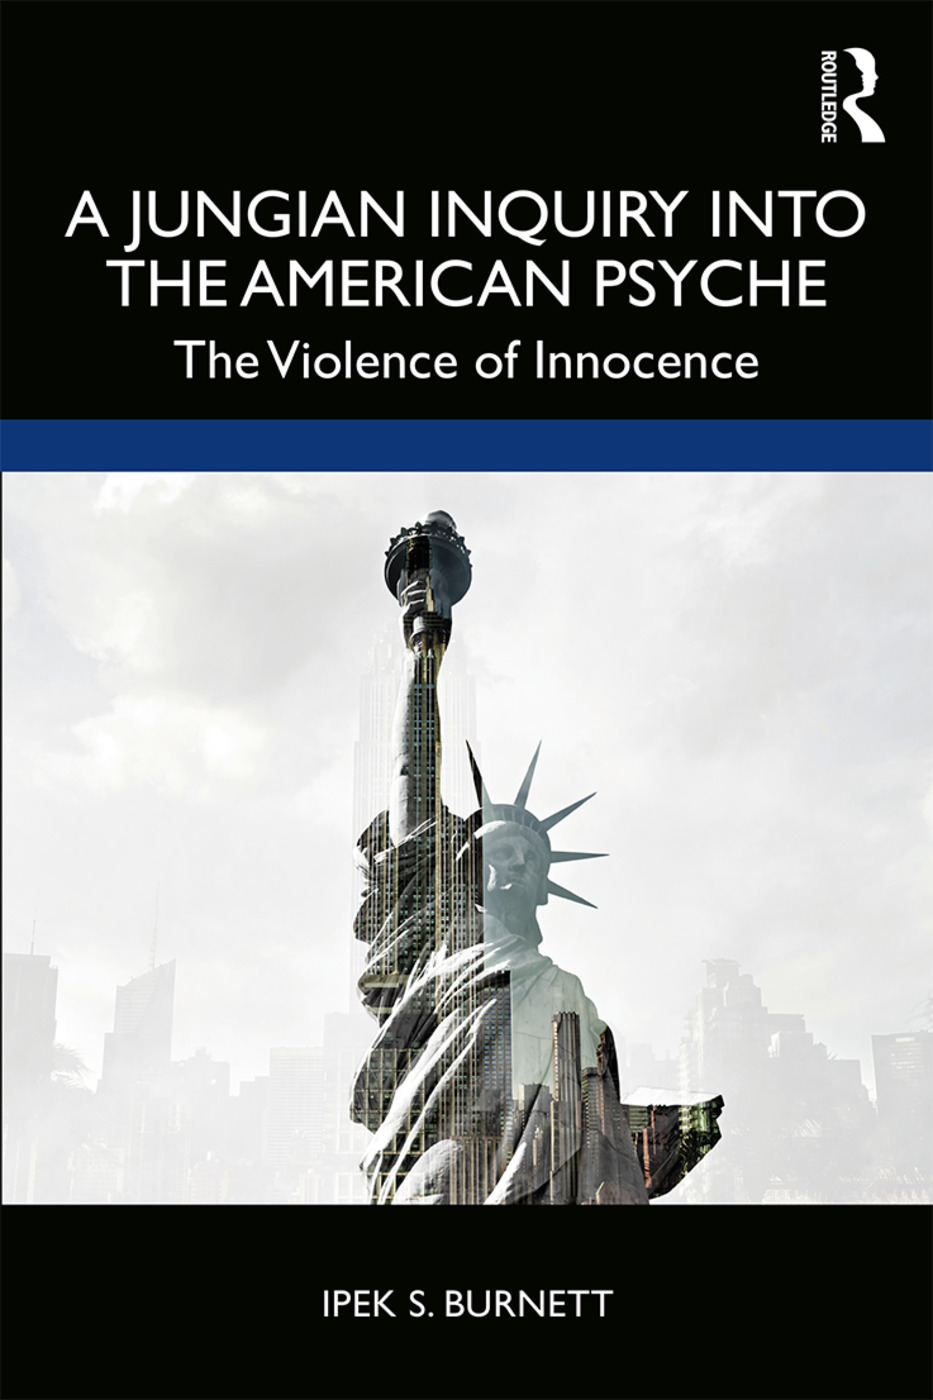 A Jungian Inquiry into the American Psyche: The Violence of Innocence book cover